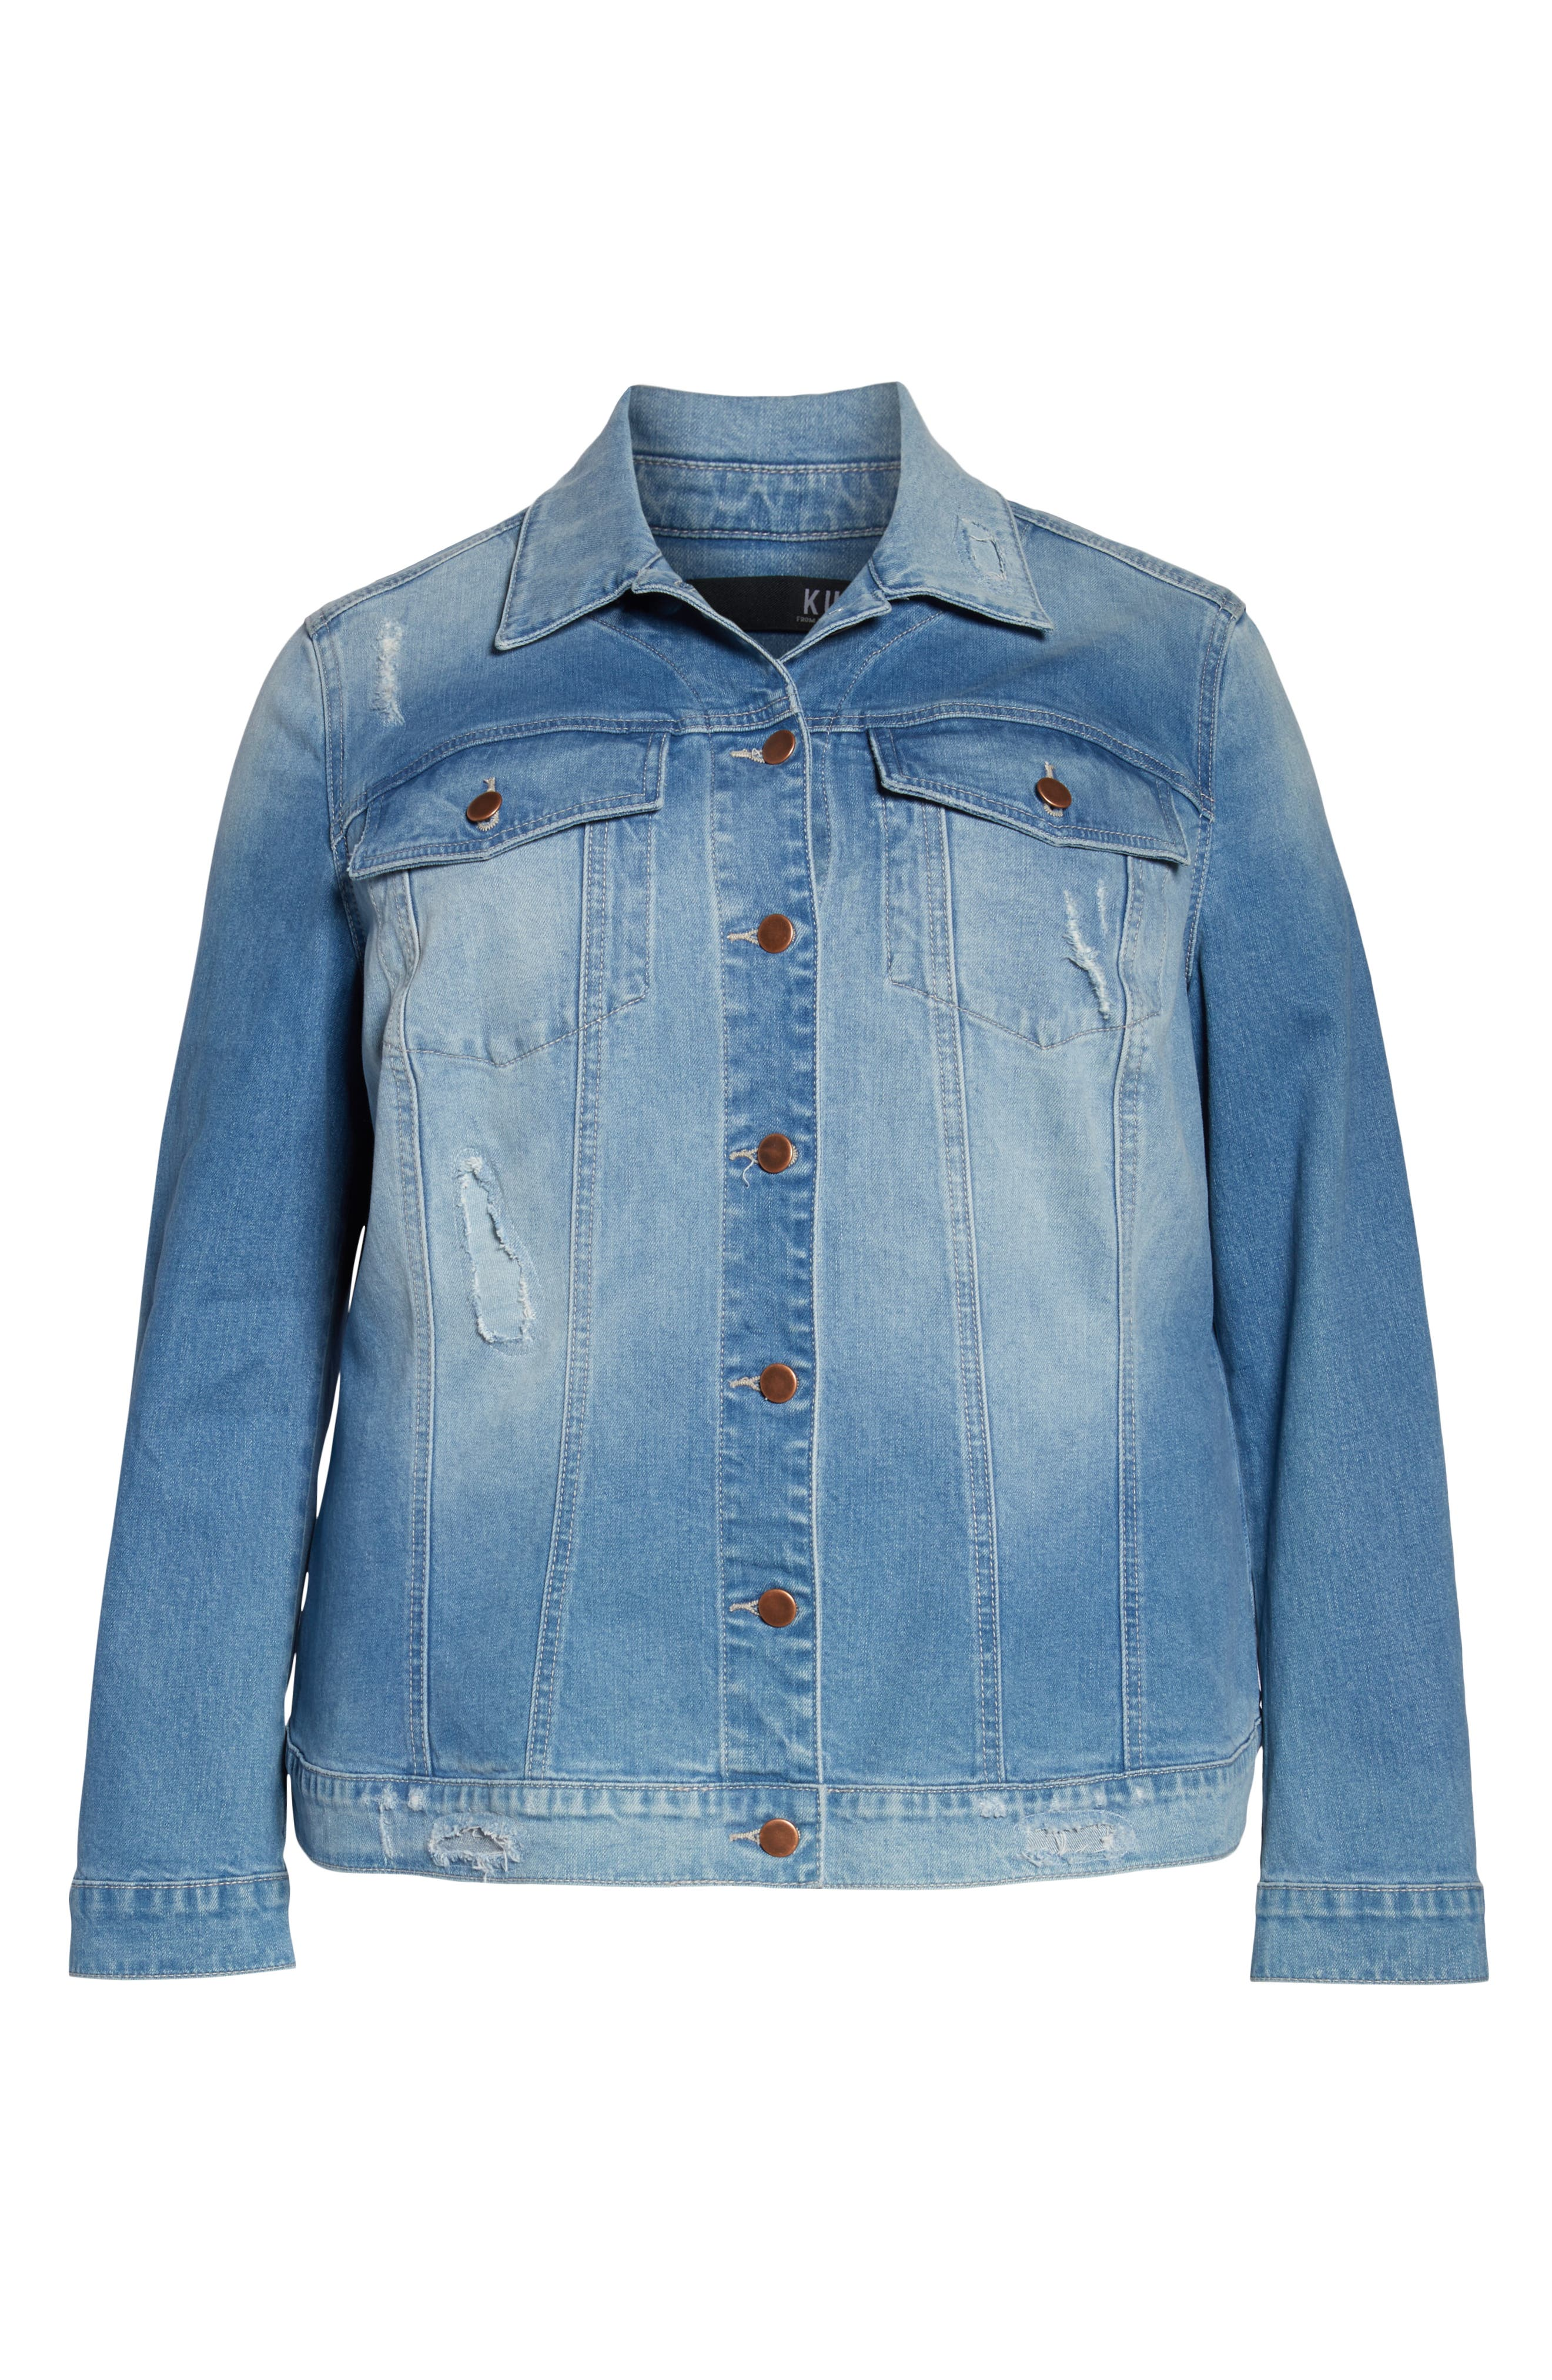 KUT FROM THE KLOTH,                             Lily Basic Denim Jacket,                             Alternate thumbnail 6, color,                             ADORN